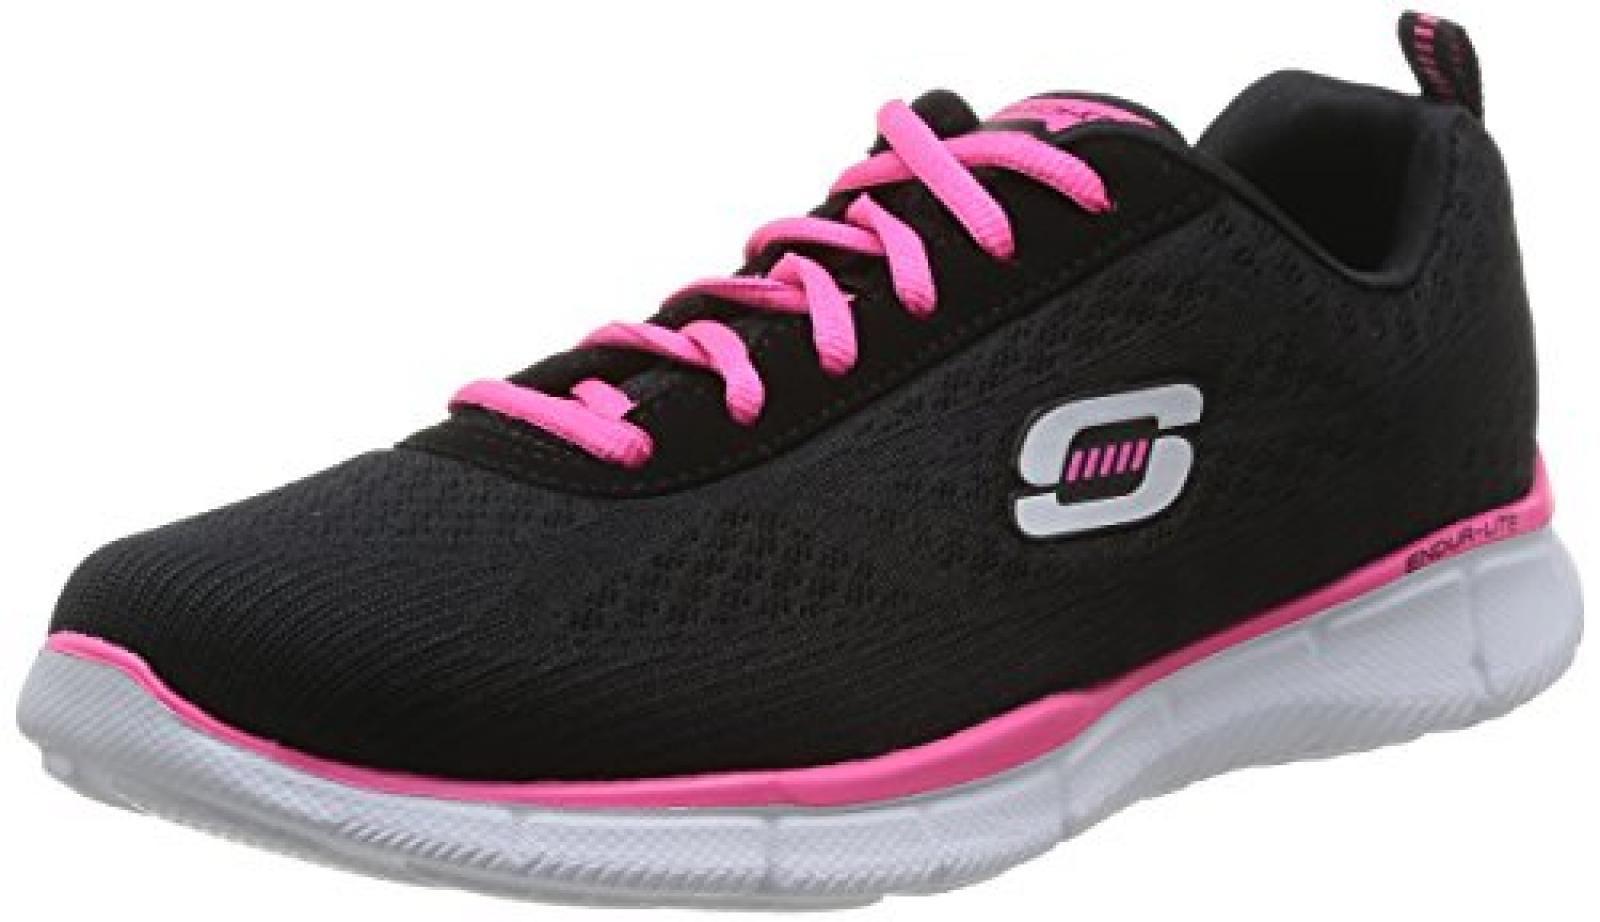 Skechers Equalizer True Form, Damen Hallenschuhe